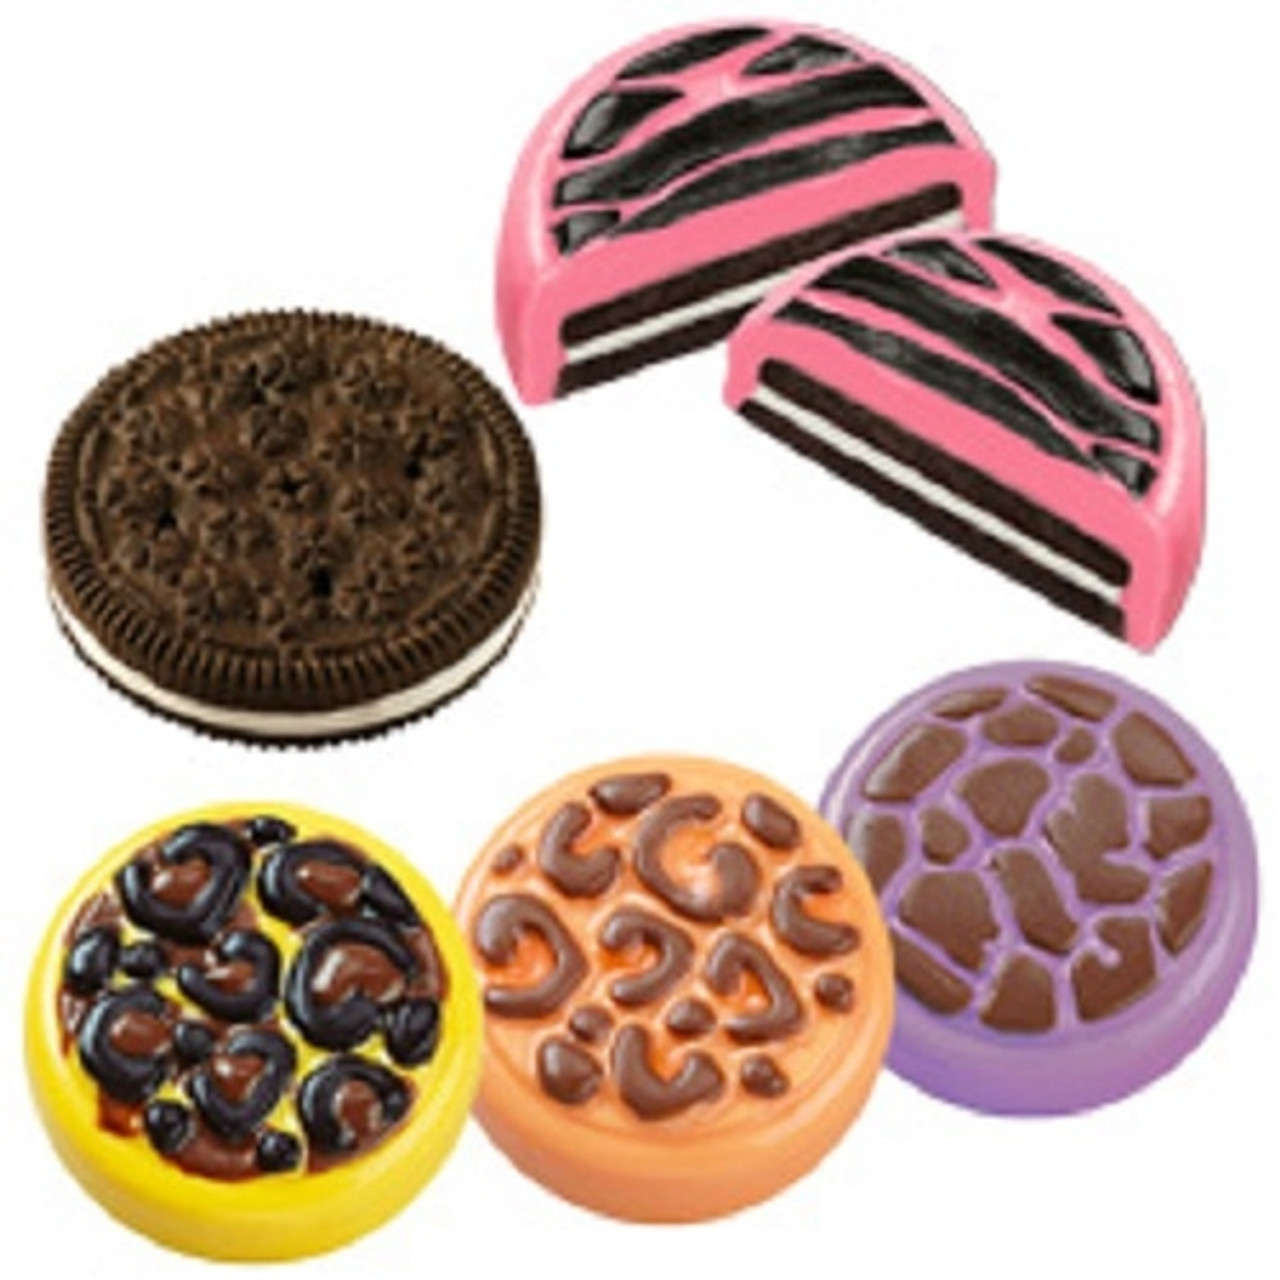 Candy Molds & Tools